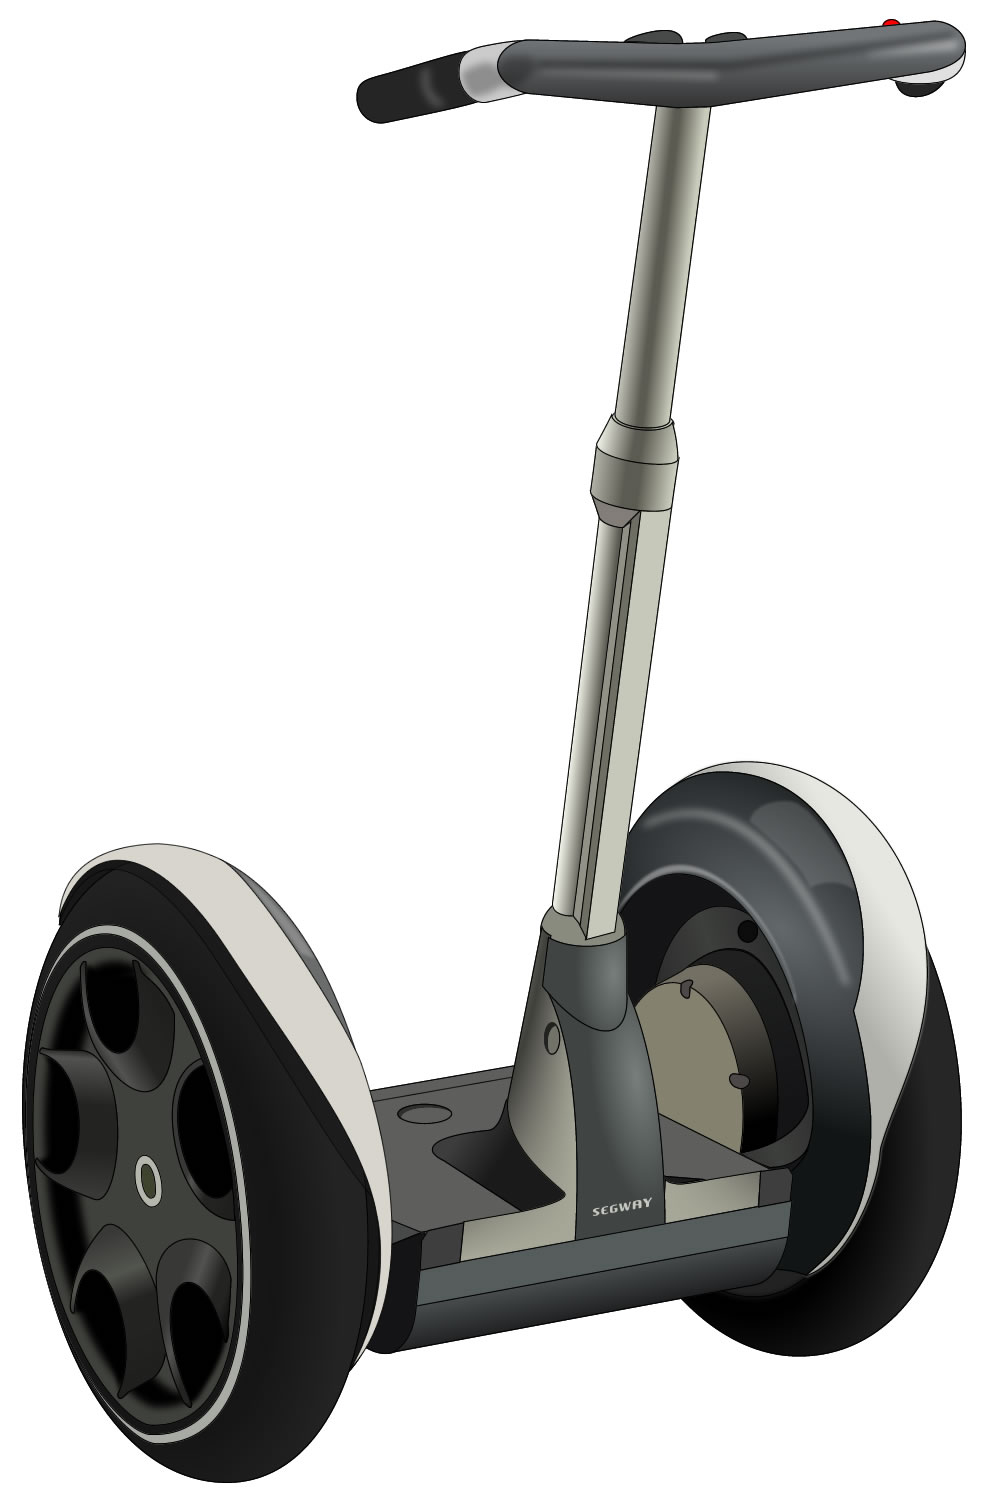 Segway Illustration